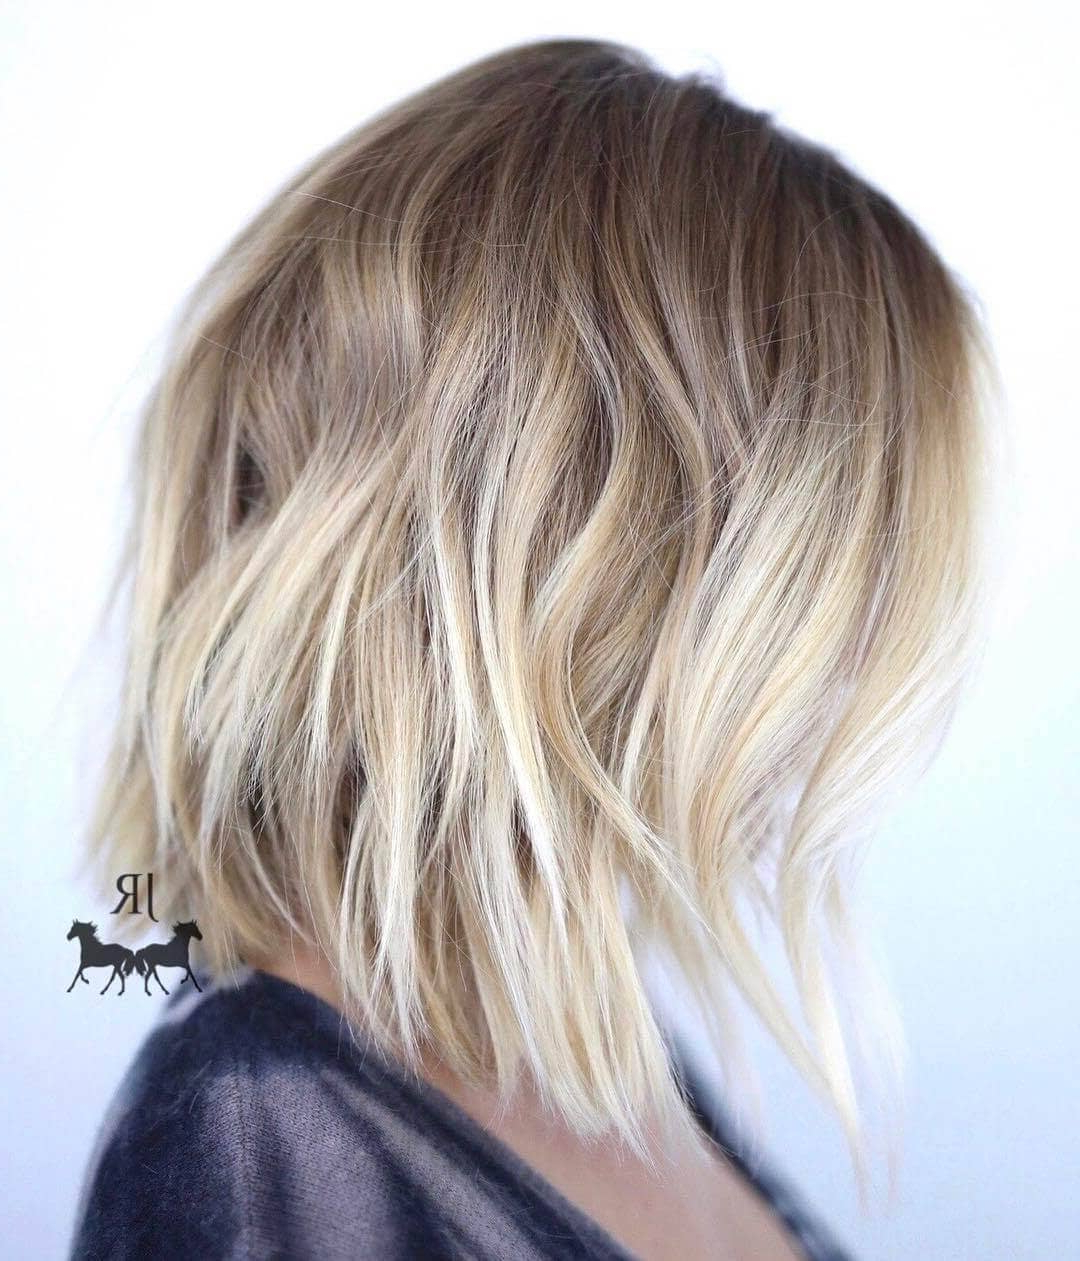 50 Fresh Short Blonde Hair Ideas To Update Your Style In 2018 Inside Short Haircuts For Blondes With Thin Hair (View 13 of 25)